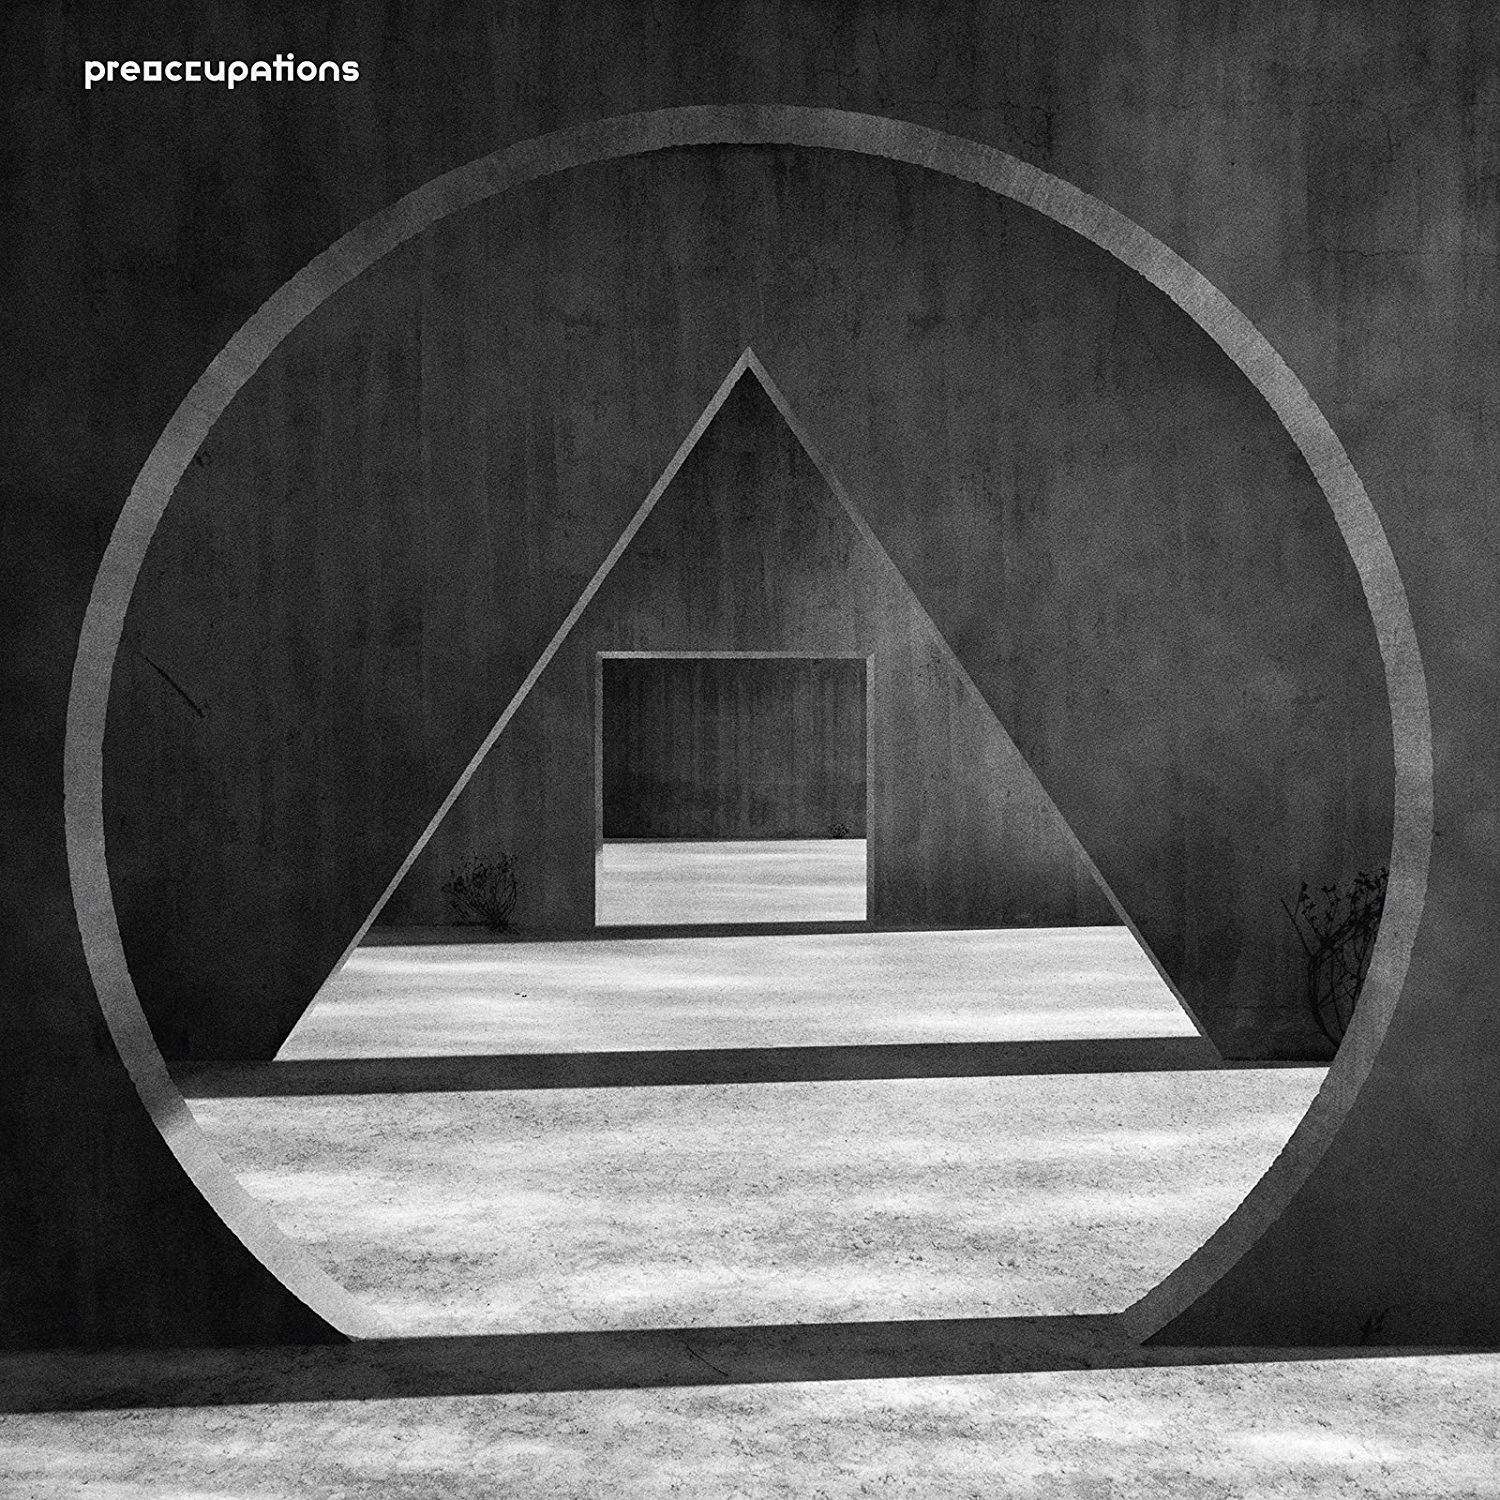 Preoccupations - New Material [Import]